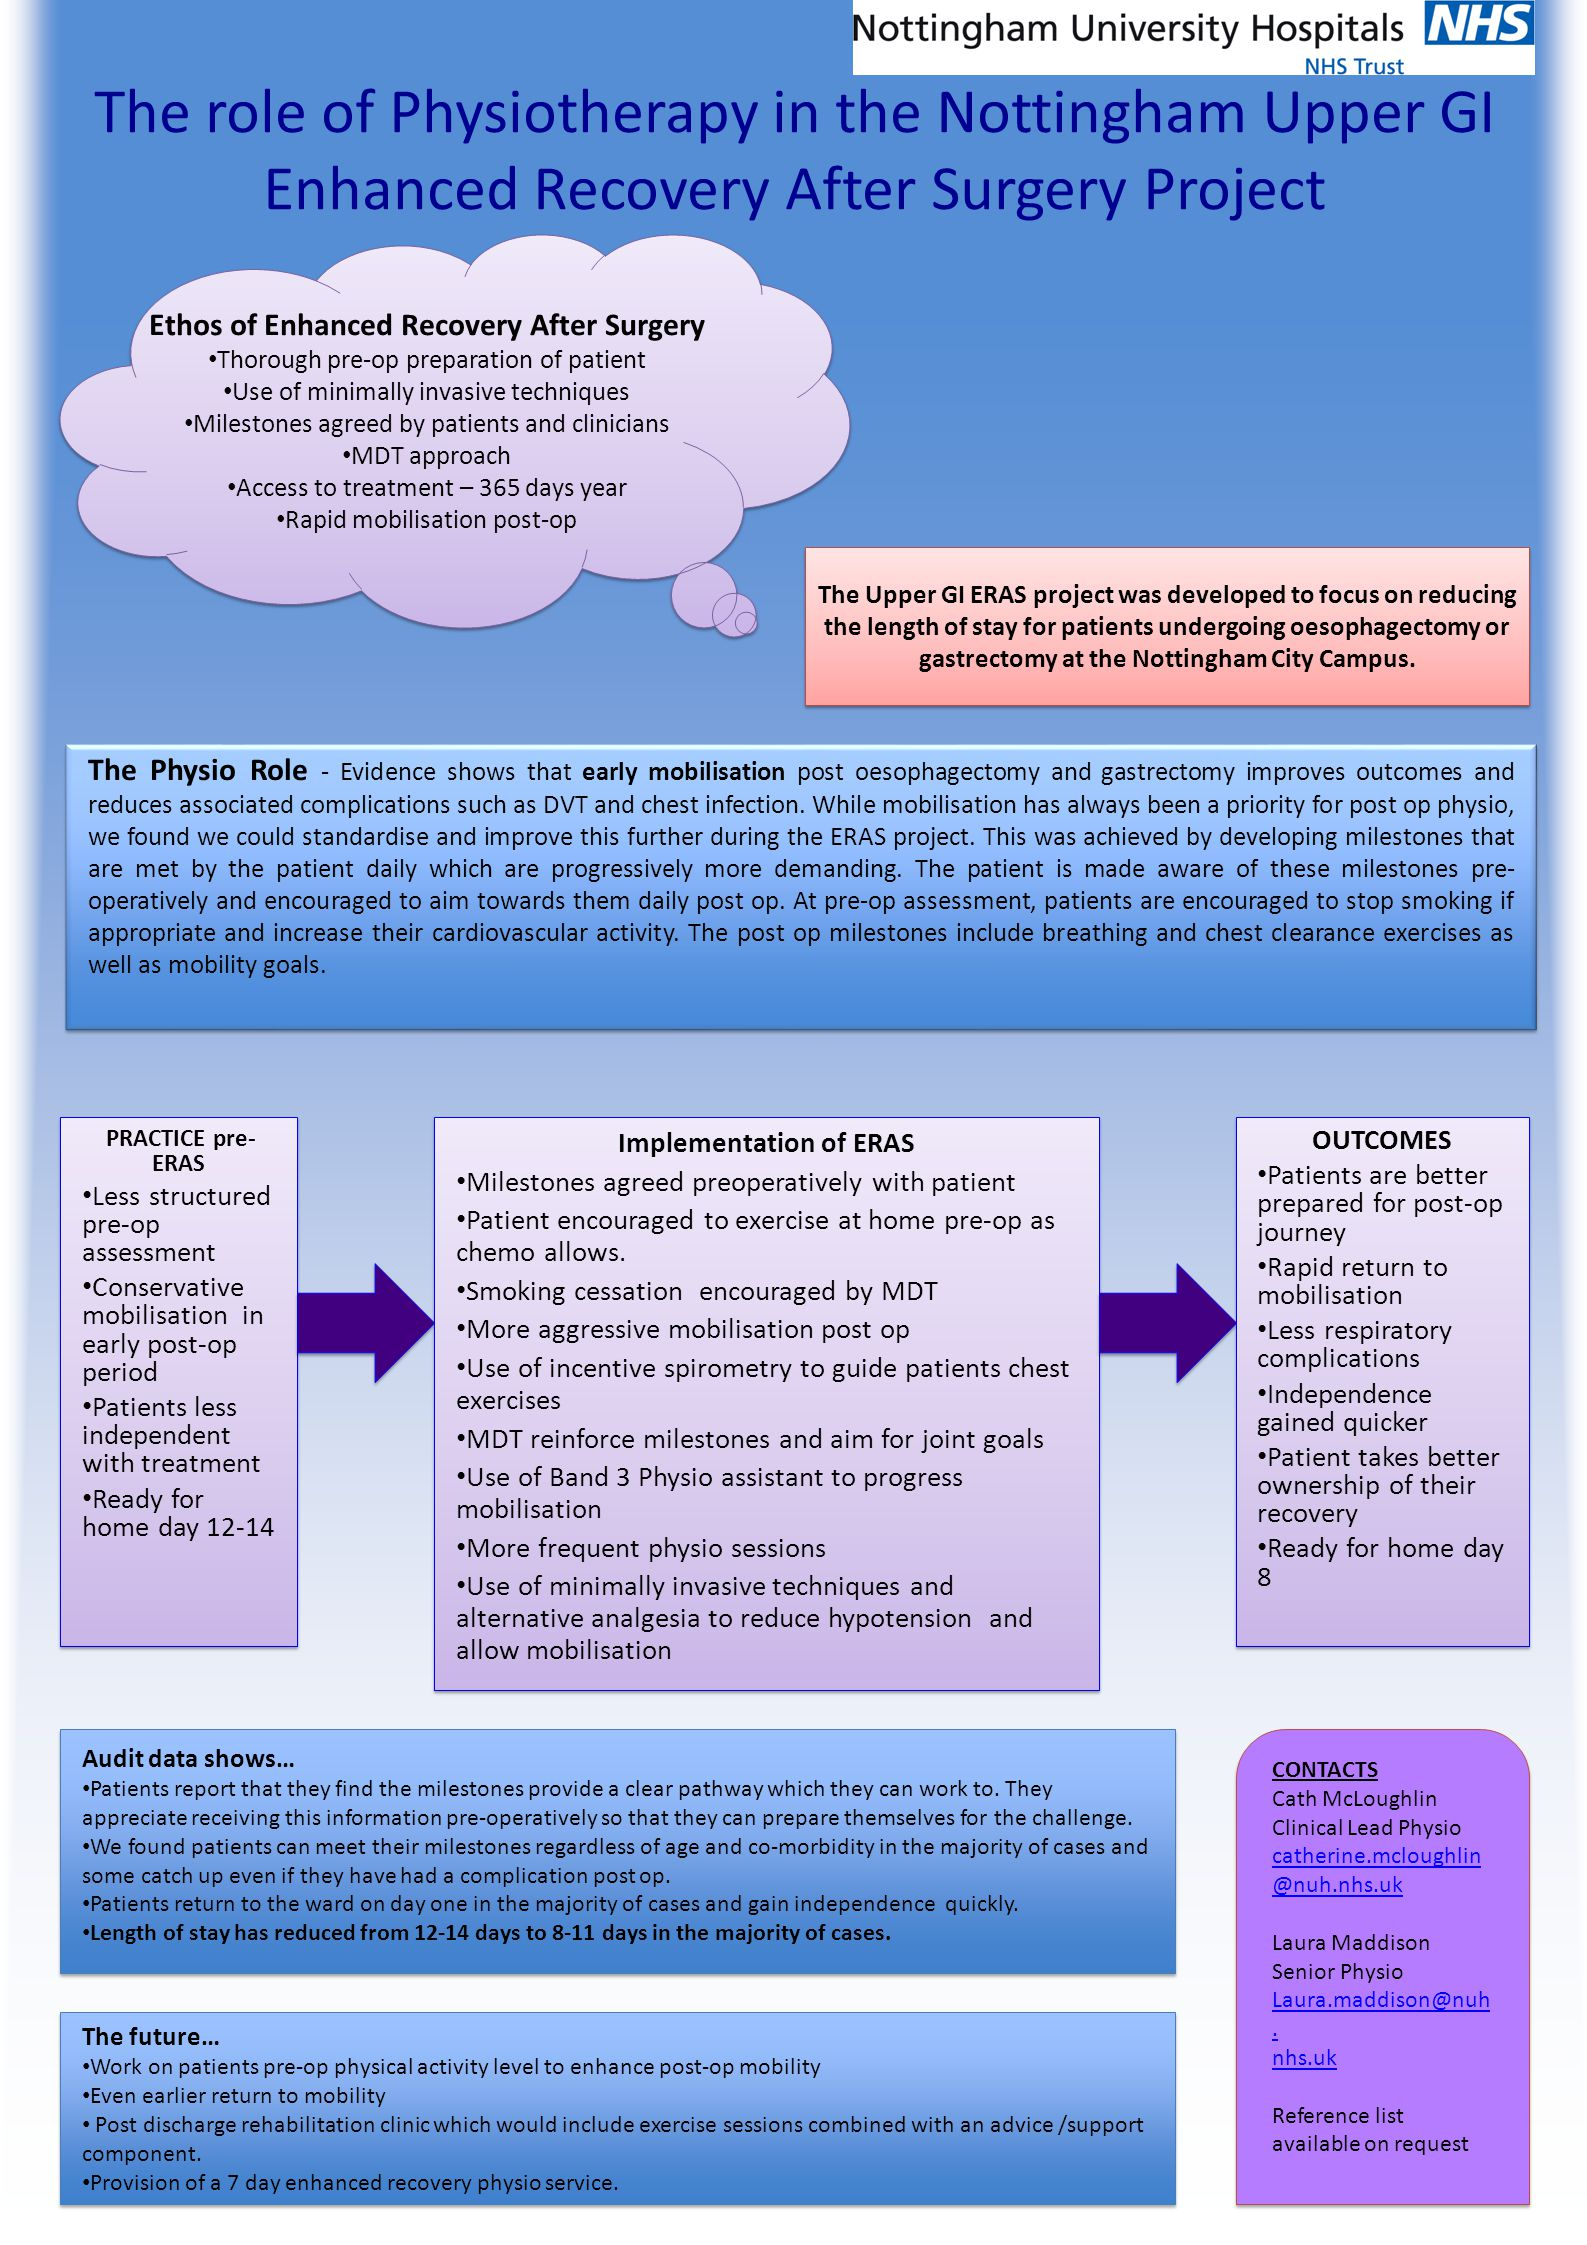 Ethos of Enhanced Recovery After Surgery Implementation of ERAS